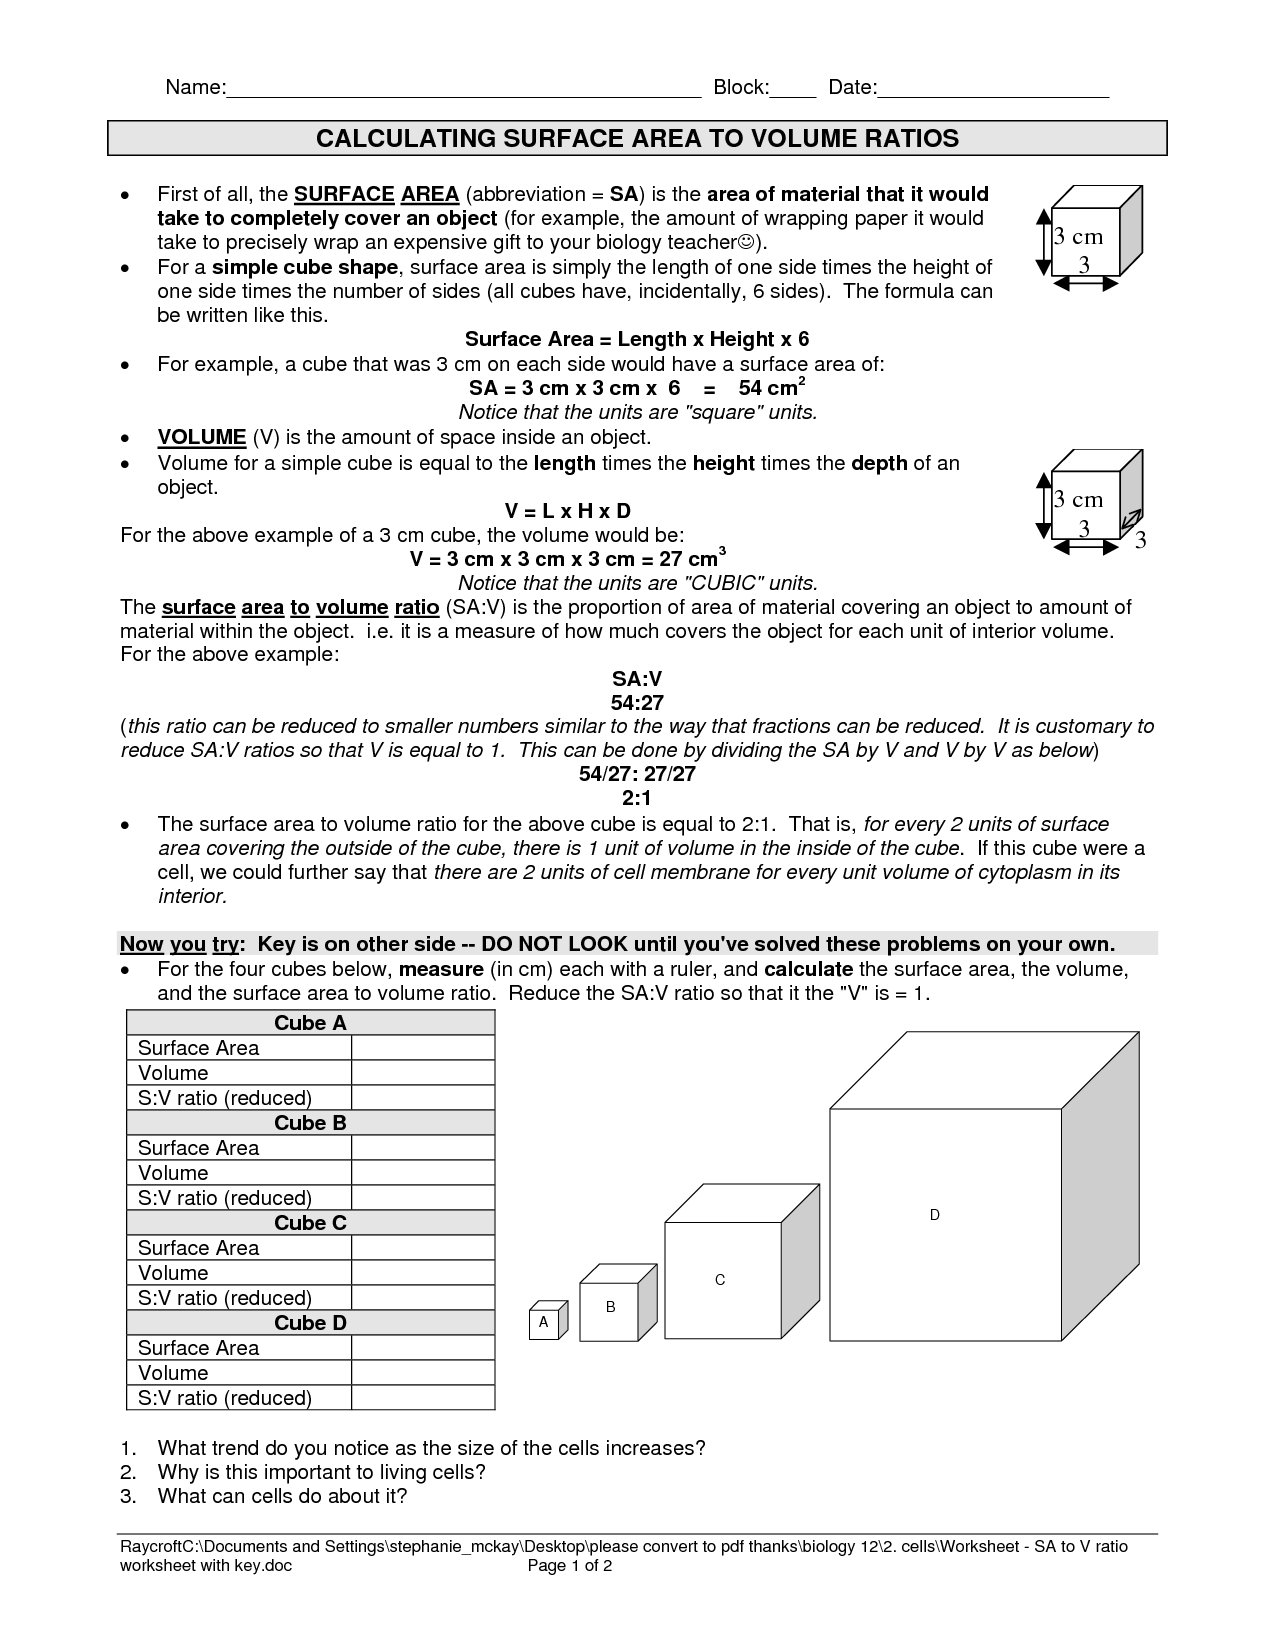 Surface Area To Volume Ratio Cells Worksheet Google Search